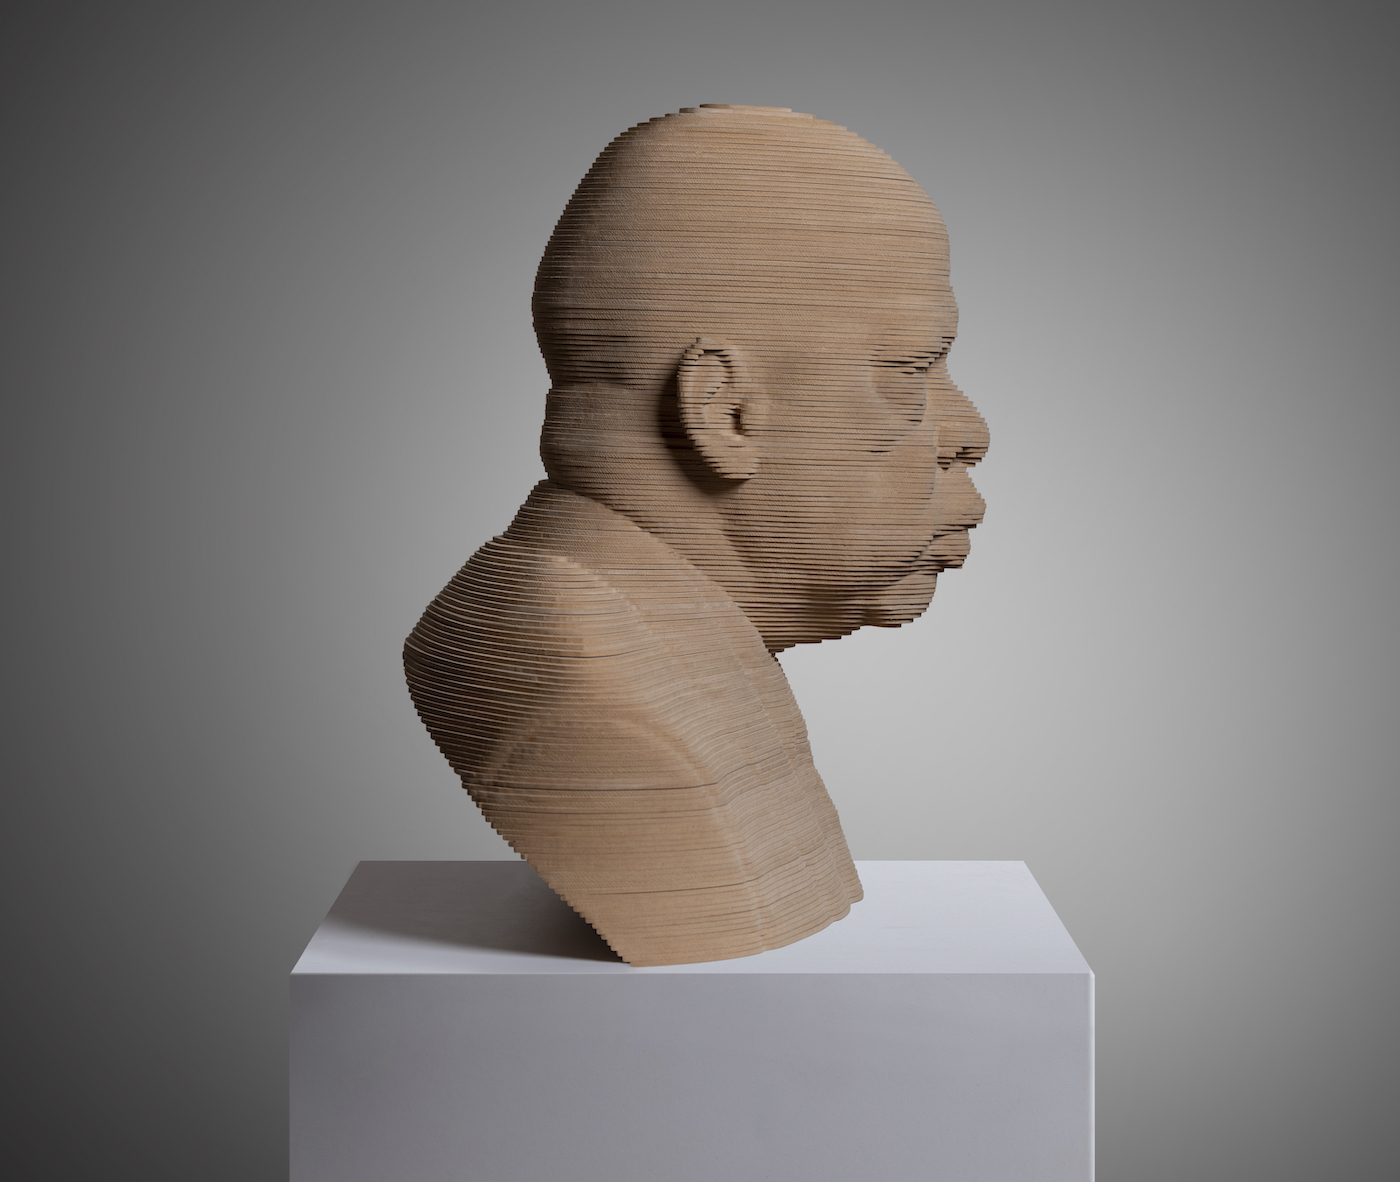 Senator John Lewis Bust Sculpture Looking Right. Made of layered wood on a white marble base.